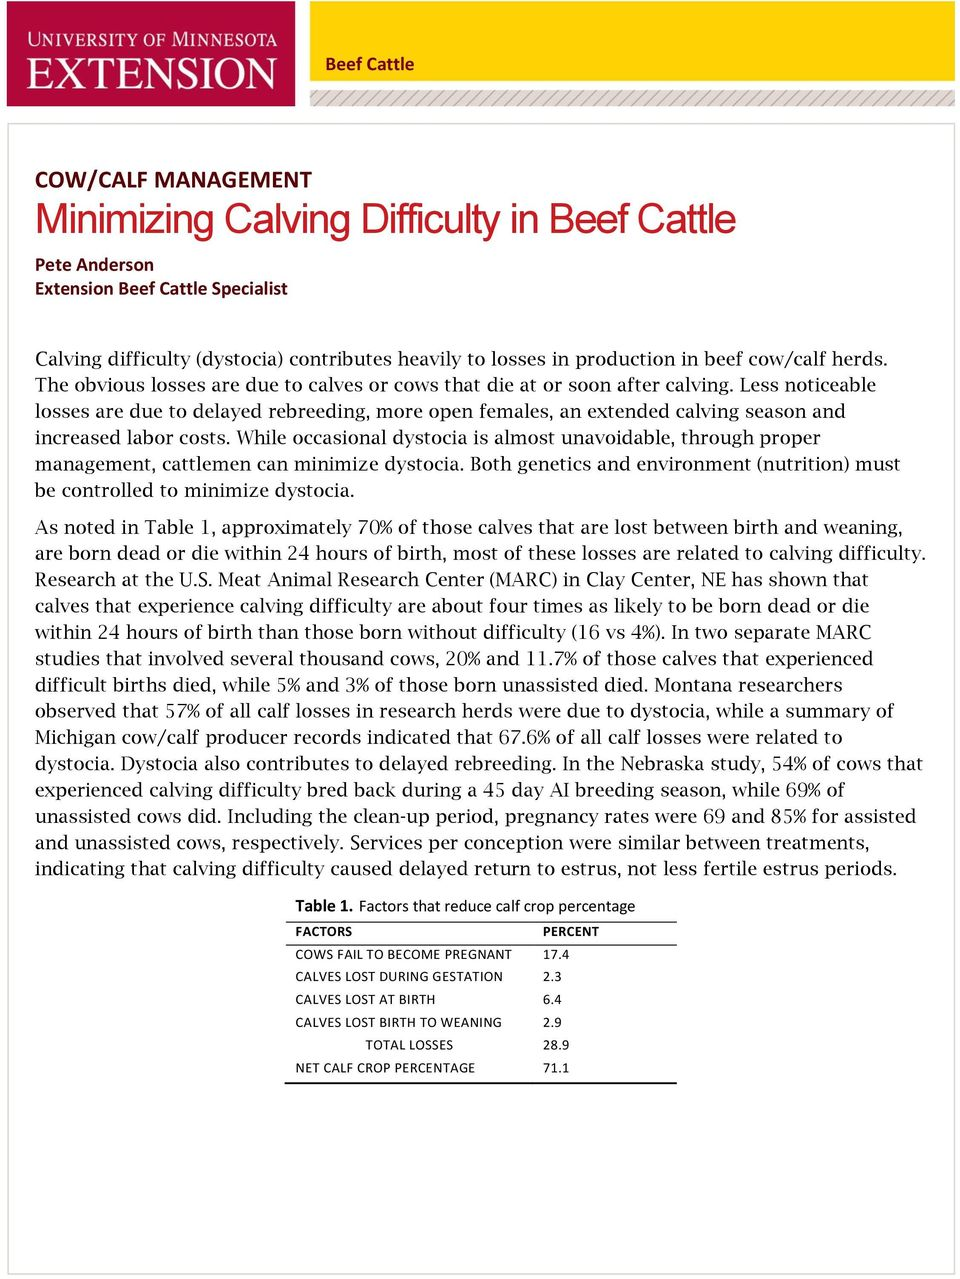 Less noticeable losses are due to delayed rebreeding, more open females, an extended calving season and increased labor costs.